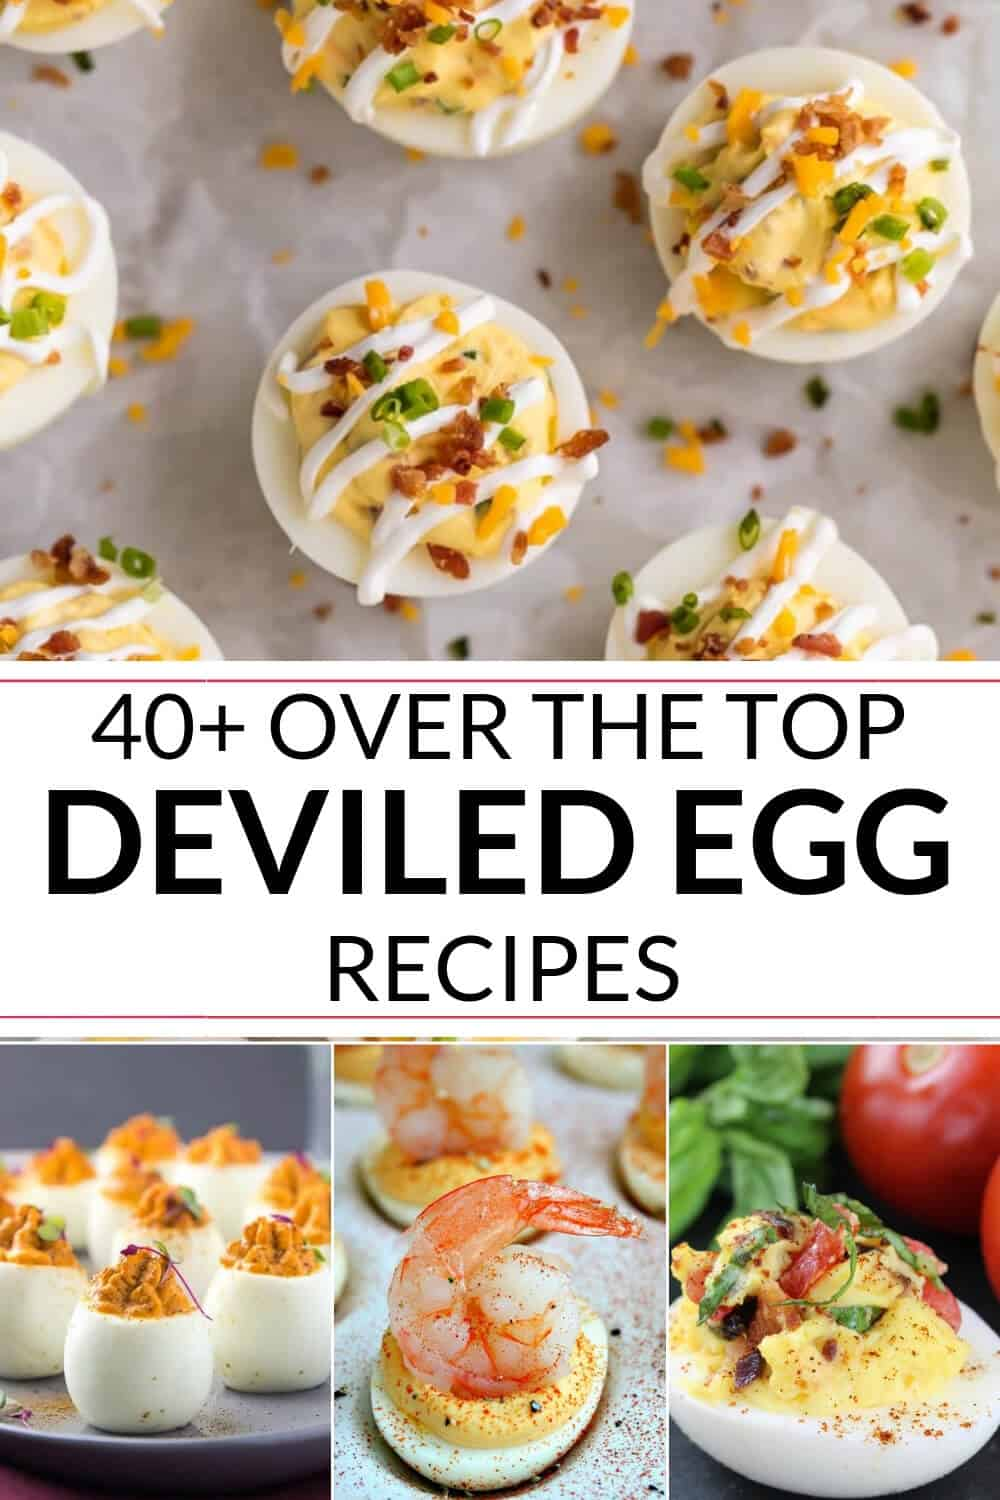 Over the top deviled egg recipes